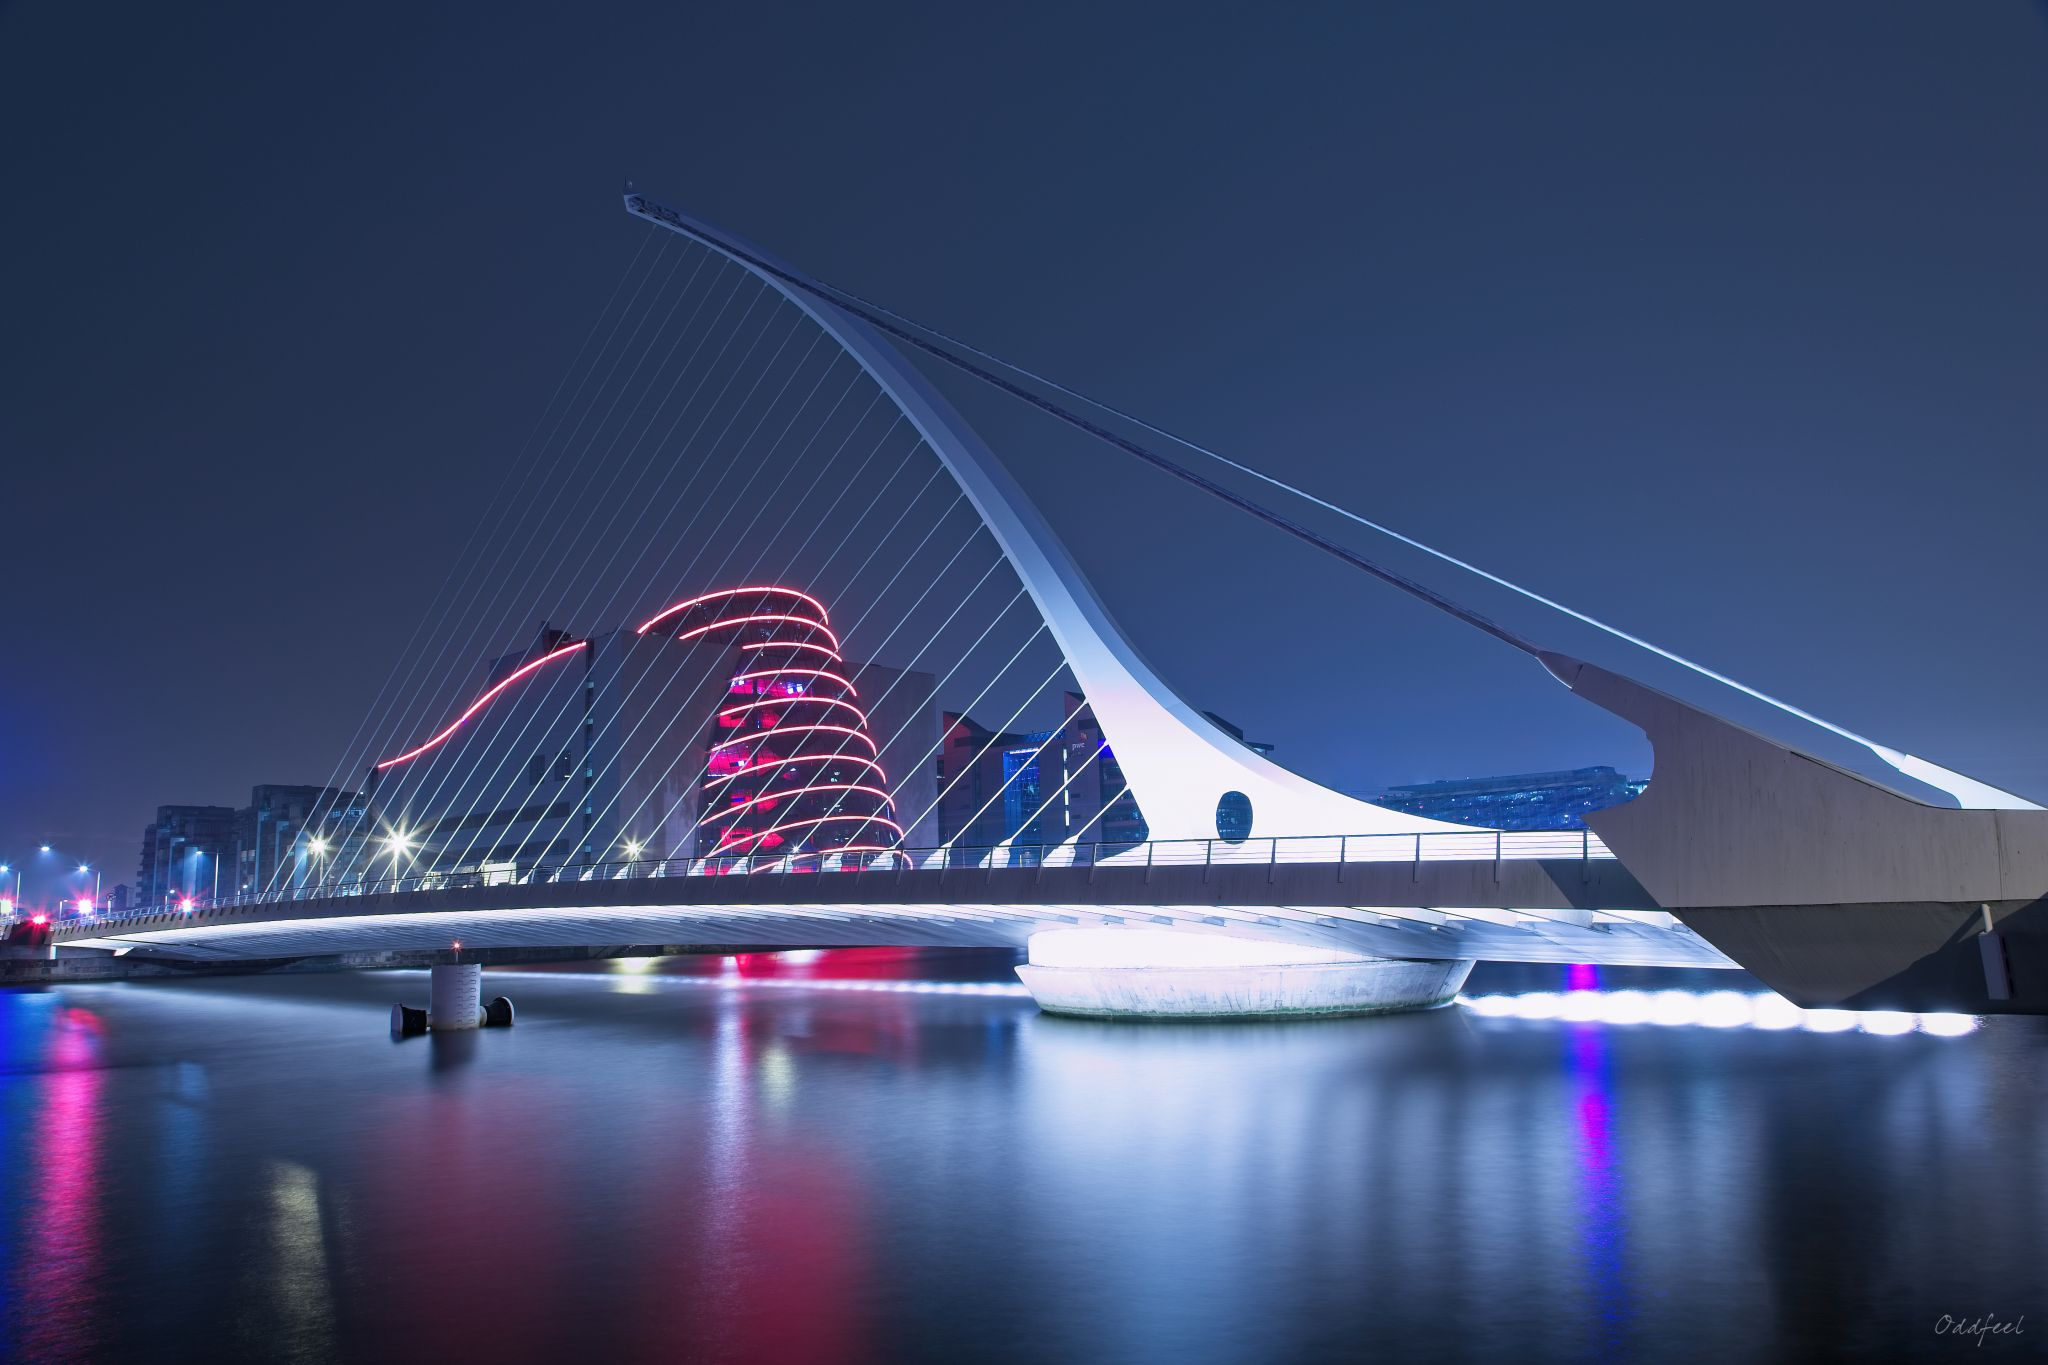 Samuel Beckett Bridge (Irish: Droichead Samuel Beckett), Ireland